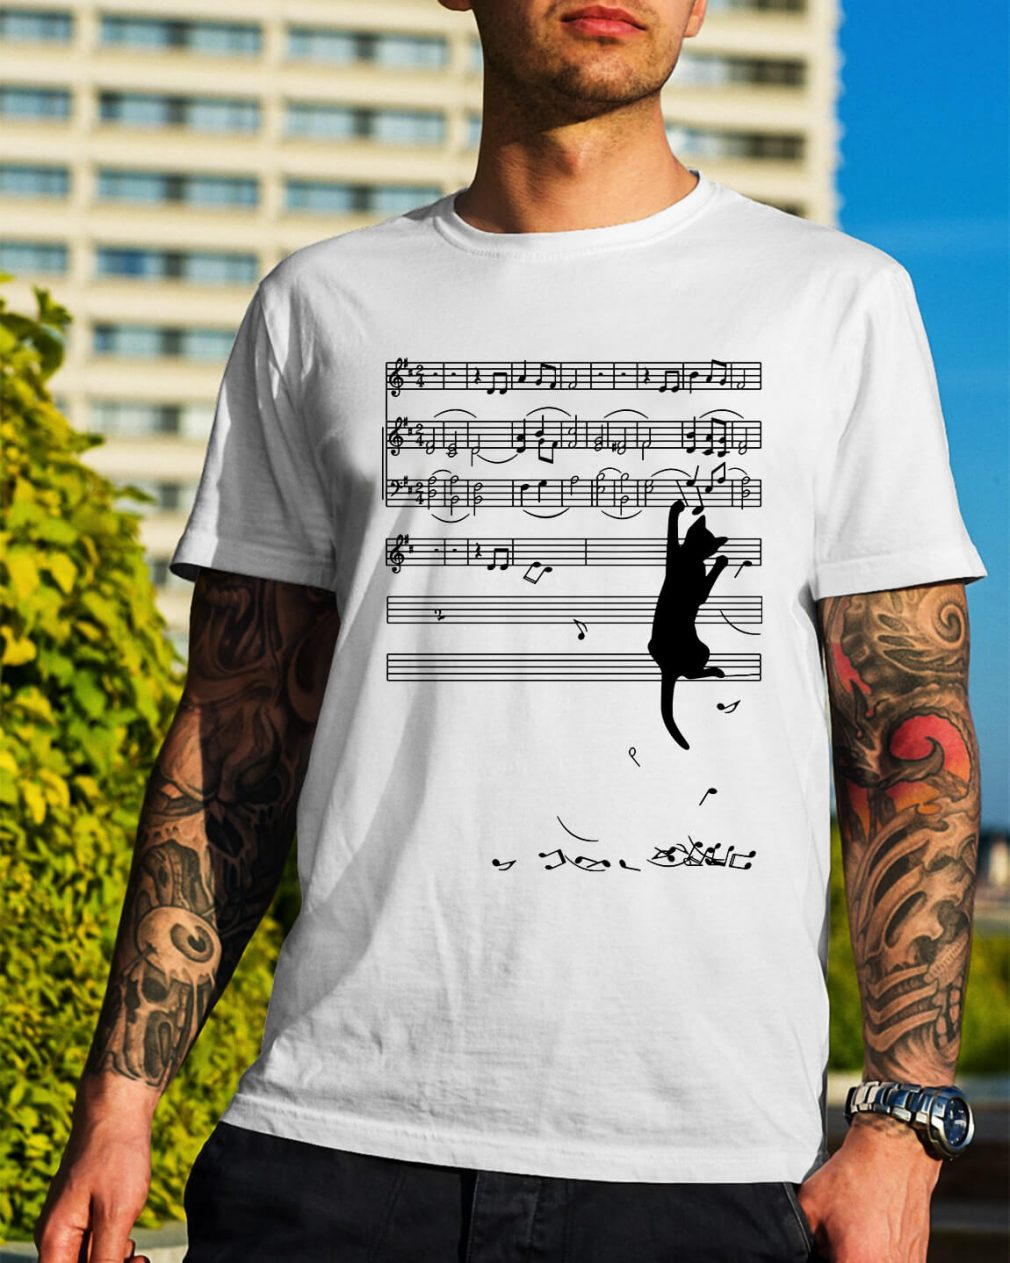 Black cat plays with music notes shirt